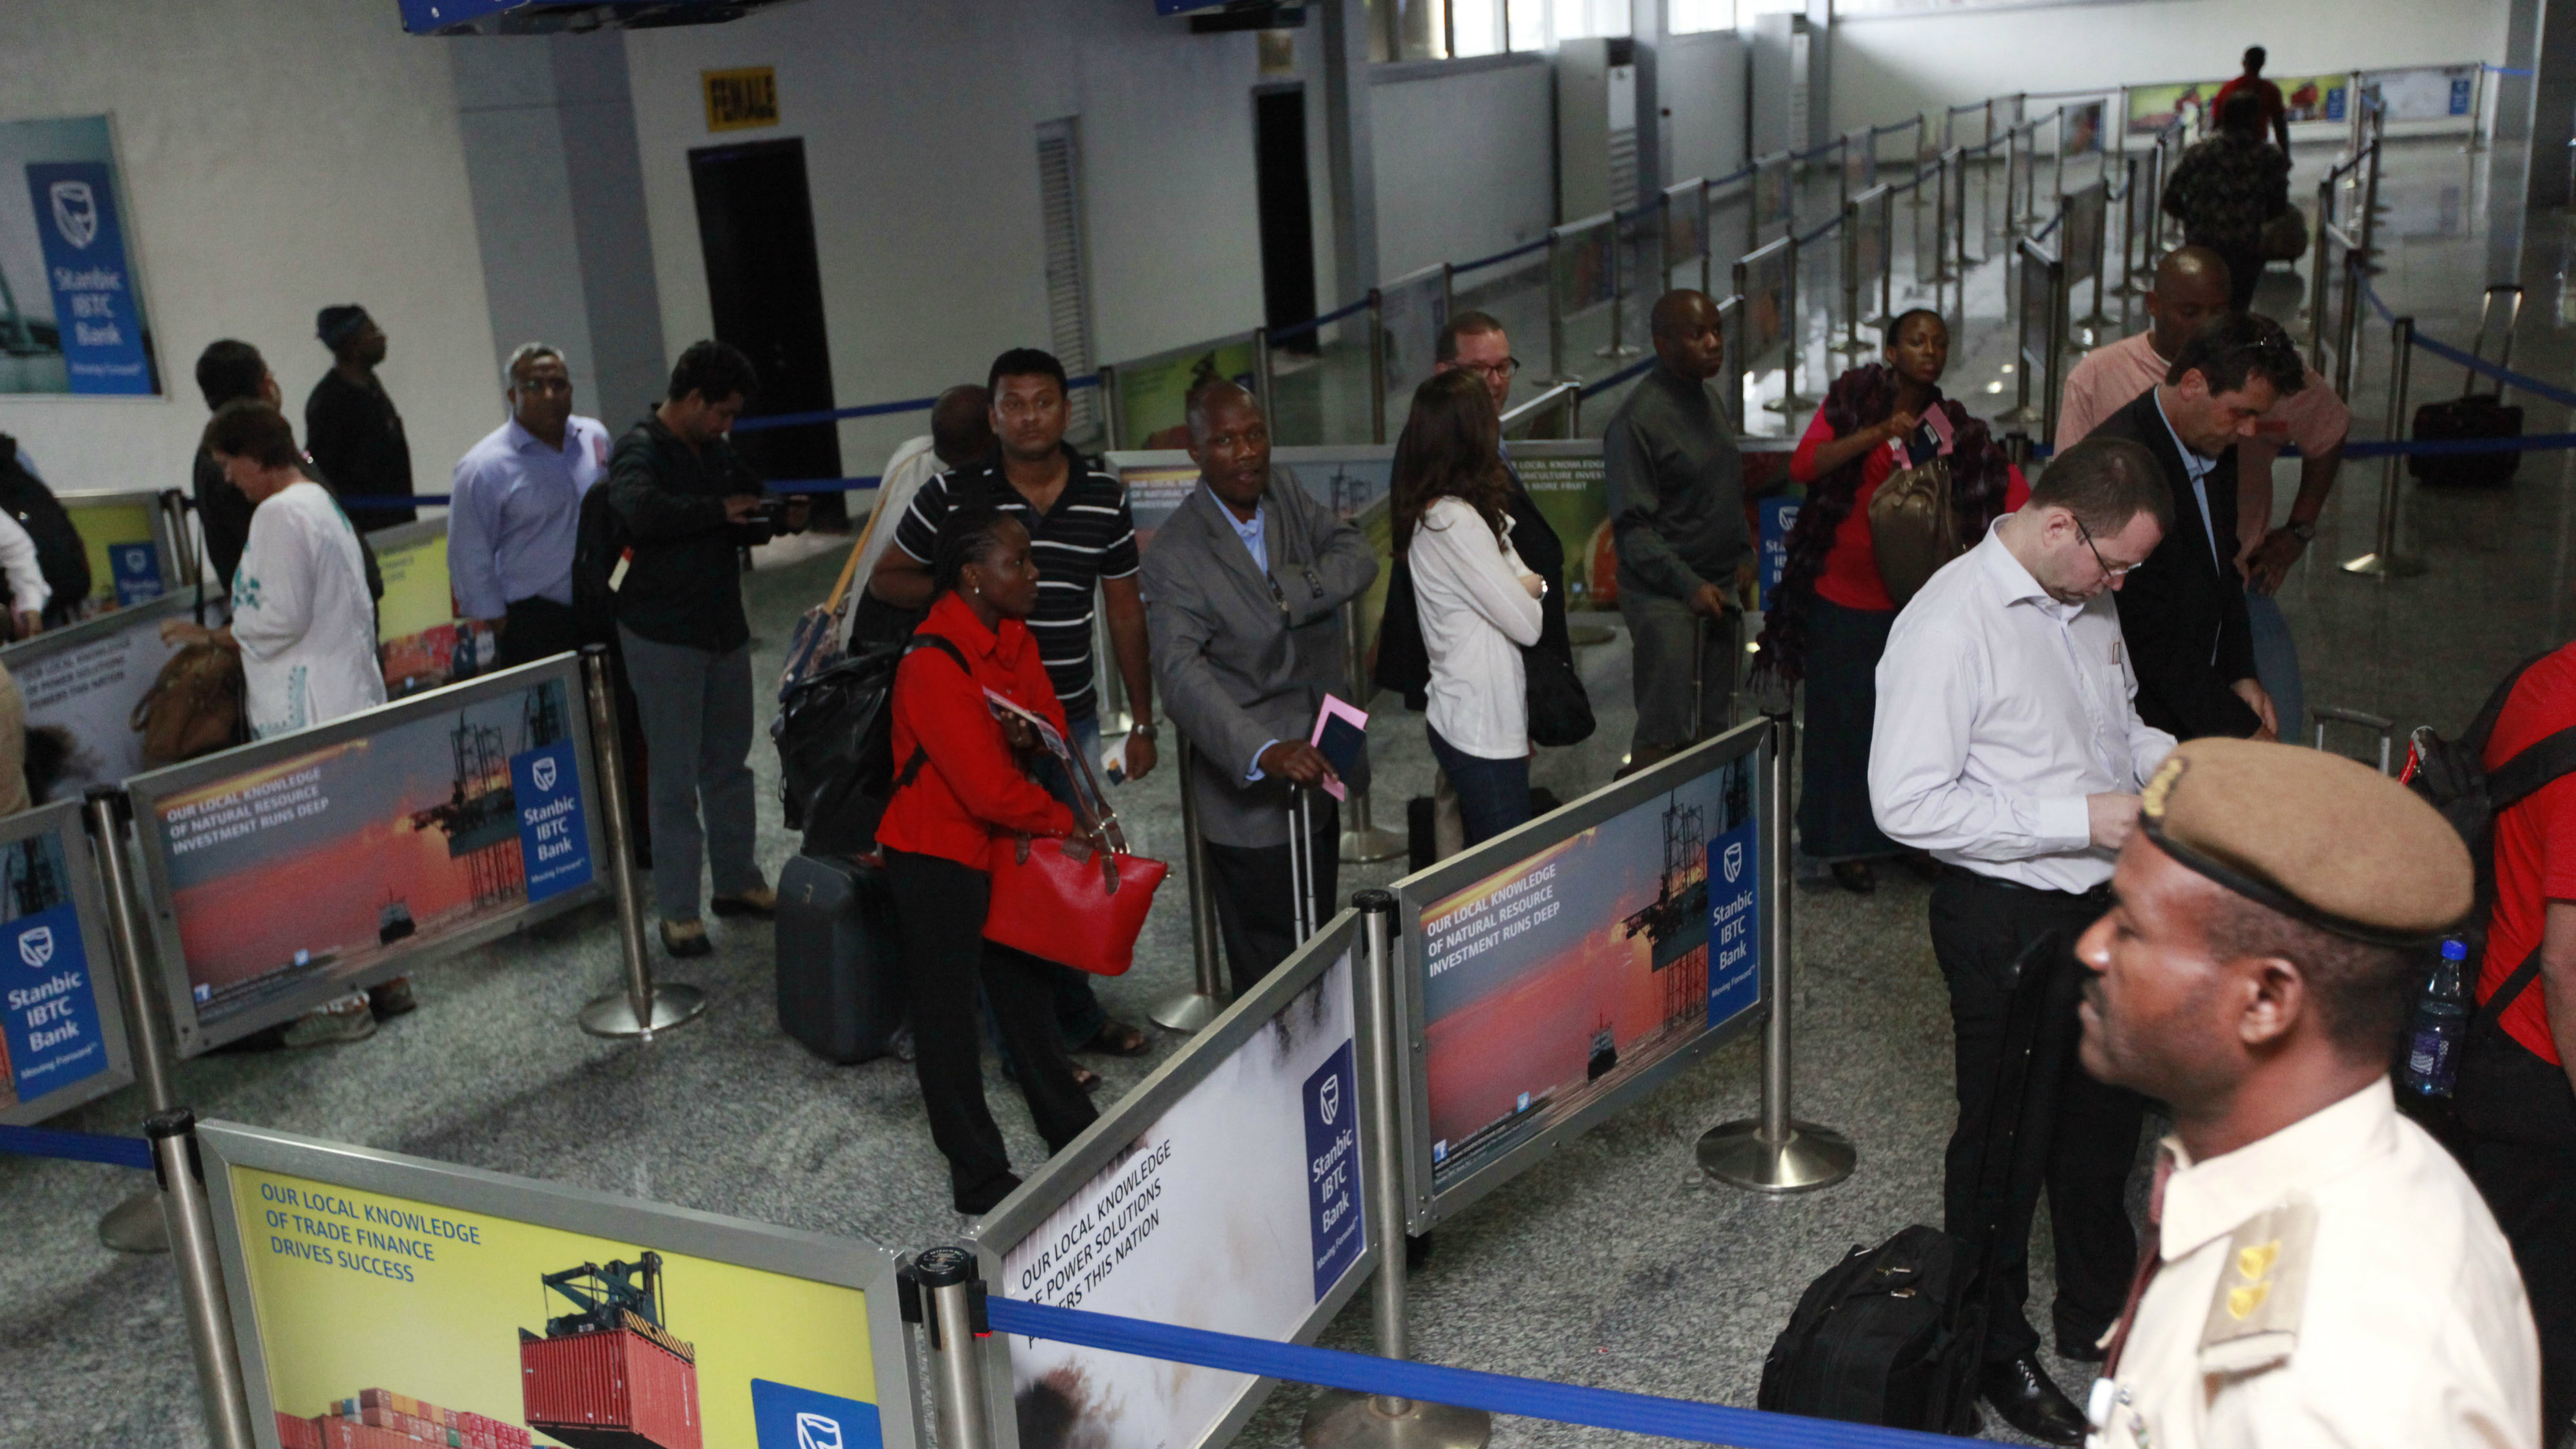 Passengers queue for their passport document check by immigration officers at the arrivals hall of Murtala Muhammed International Airport in Lagos, Nigeria, Monday, Aug. 4, 2014.